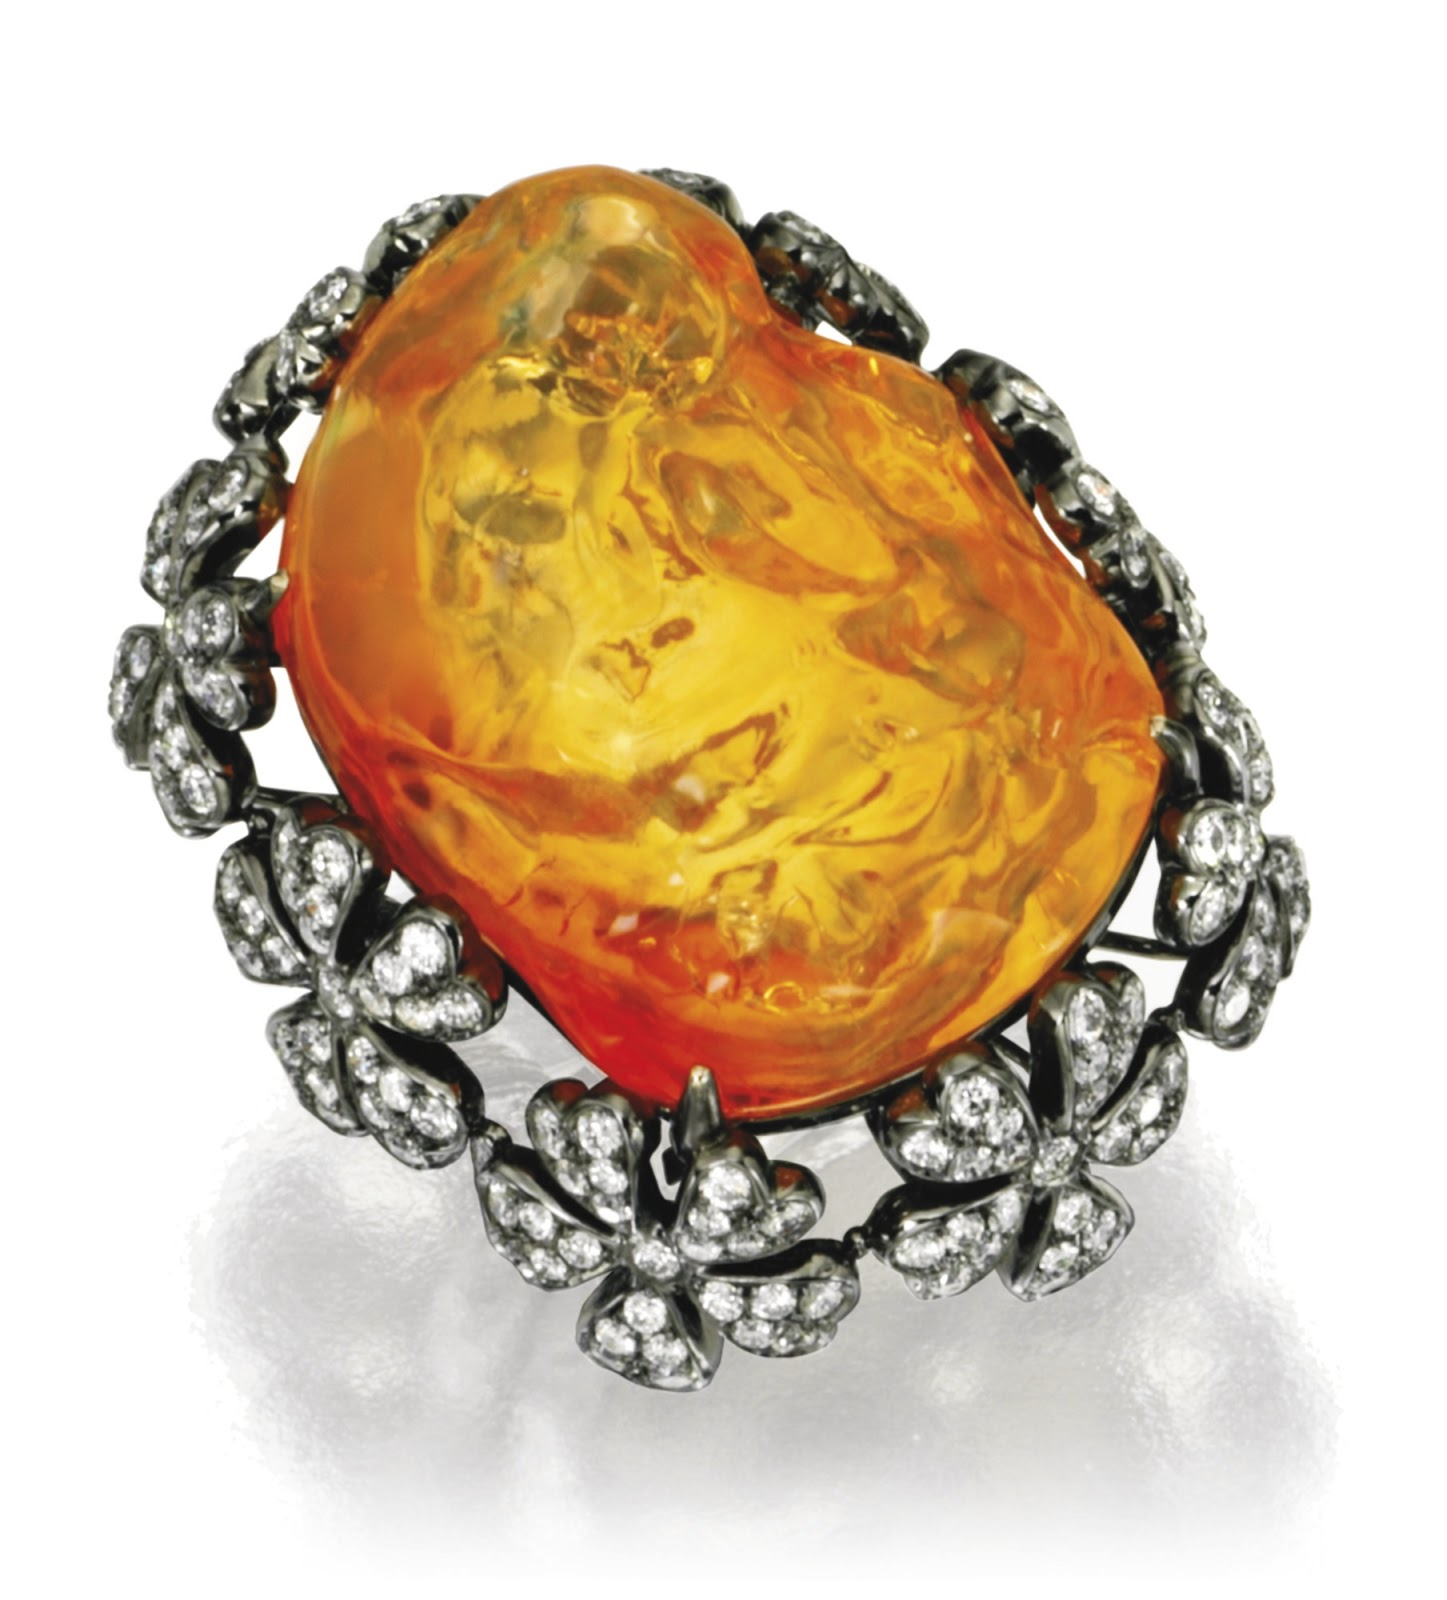 Gold fire opal and diamond ring by sifen chang 18 karat blackened gold